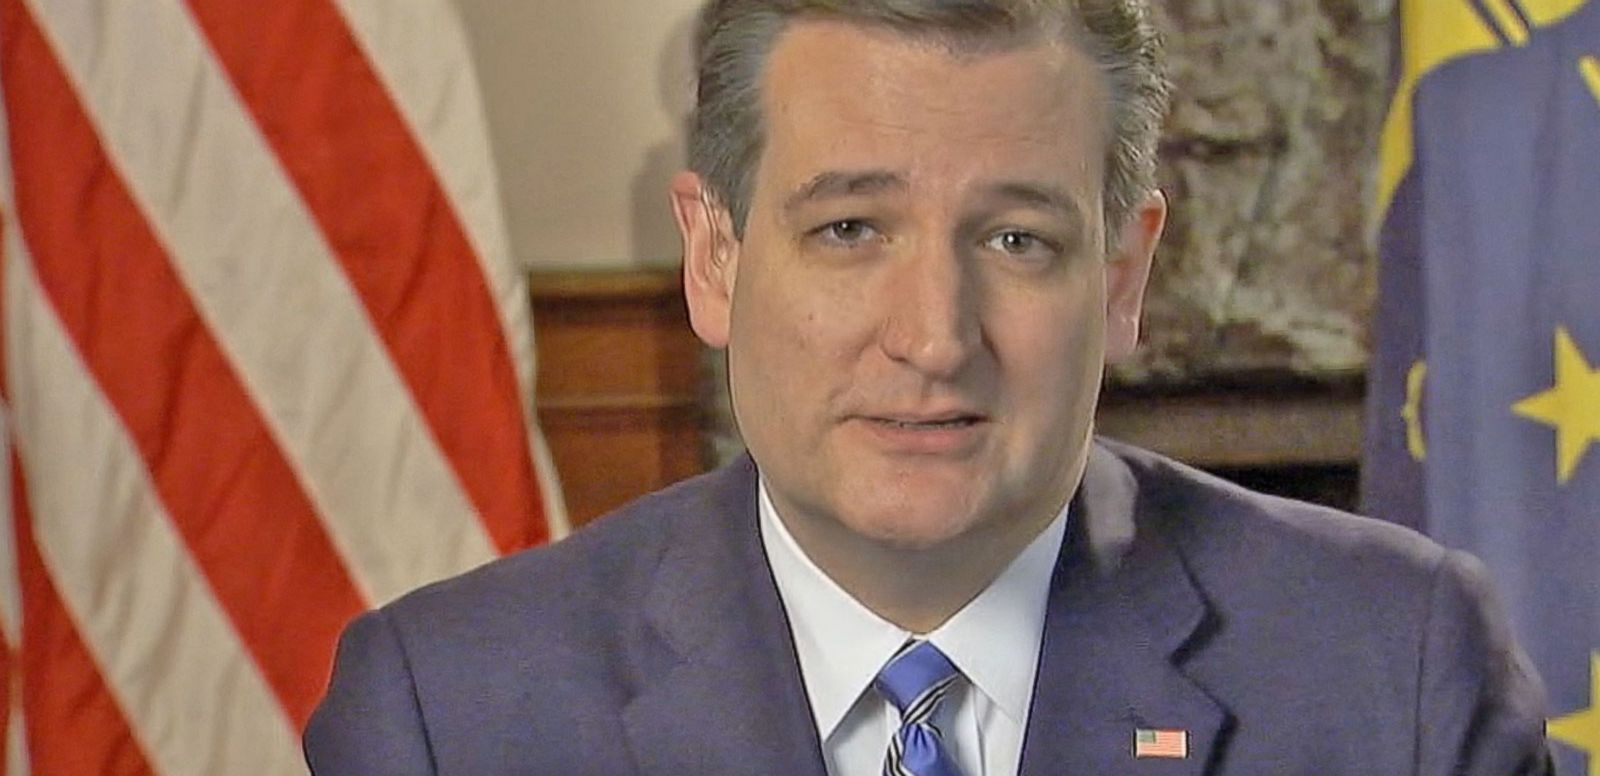 VIDEO: Cruz Vows to 'Go the Distance' Ahead of Crucial Indiana Primary